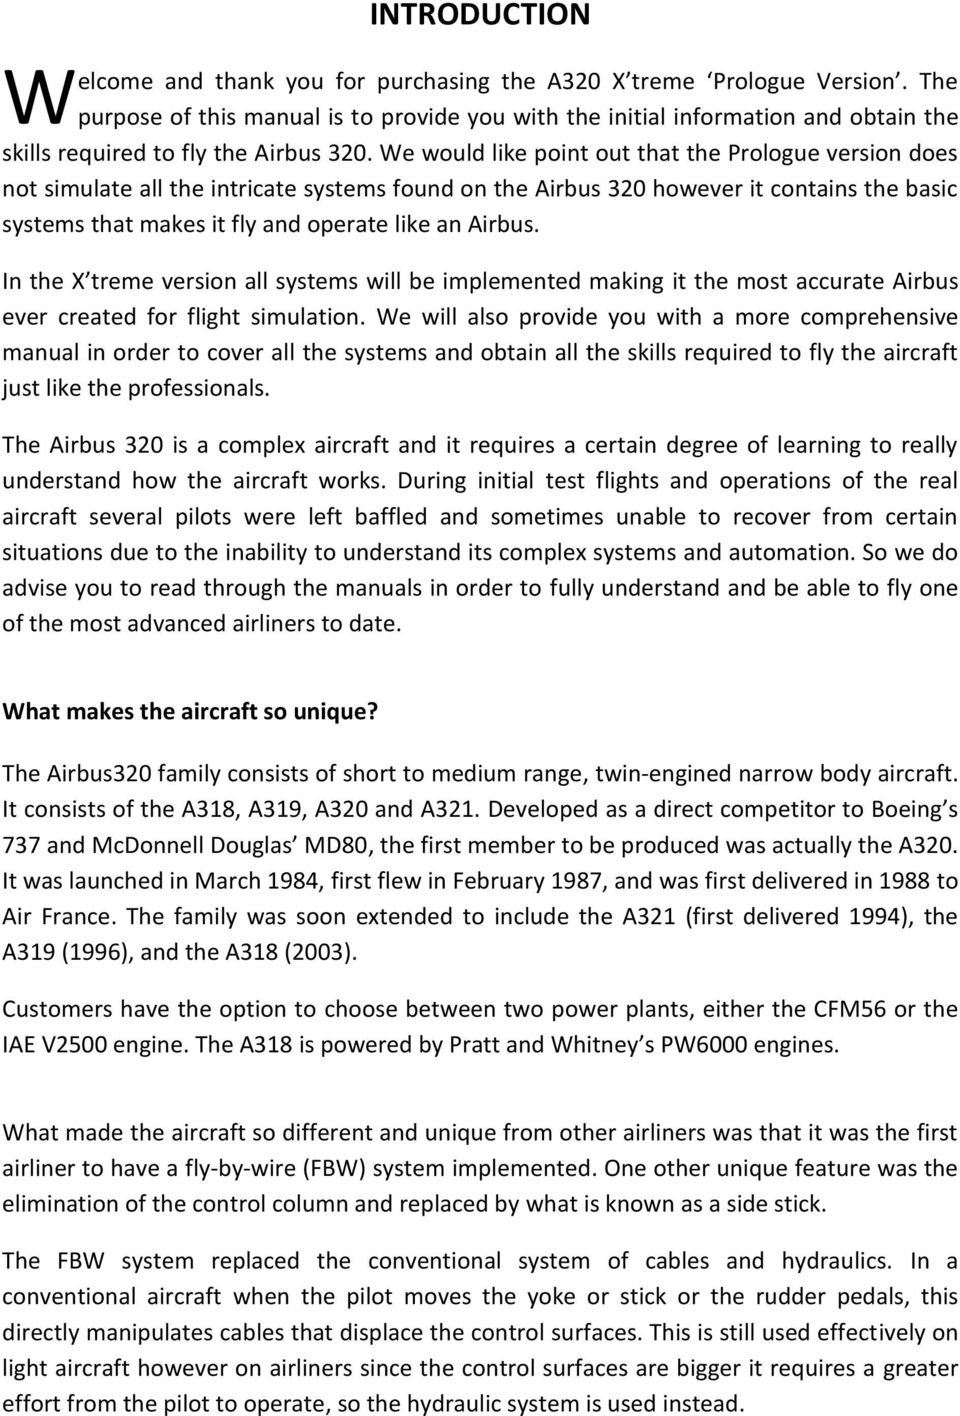 Airbus 319 320 321 Operations Manual Pdf Wiring Diagram We Would Like Point Out That The Prologue Version Does Not Simulate All Intricate Systems